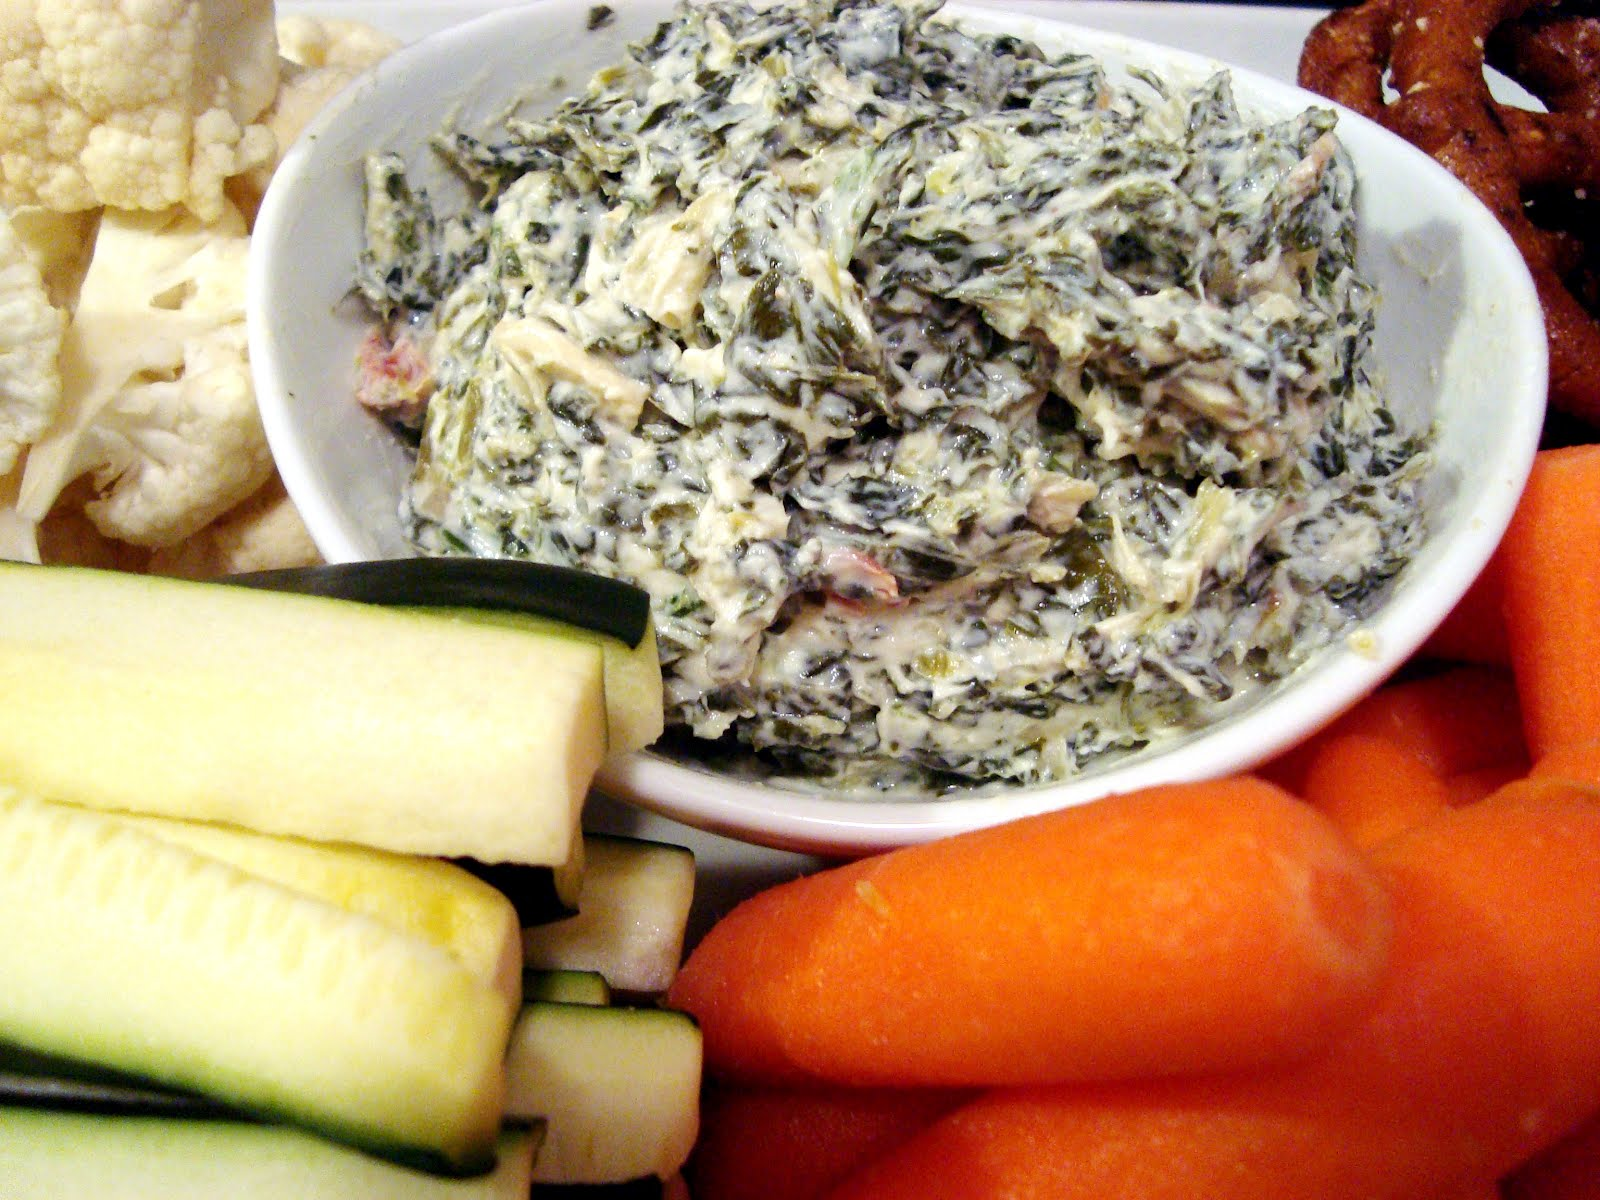 spinach dip the best spinach artichoke dip ever aunt carol s spinach ...